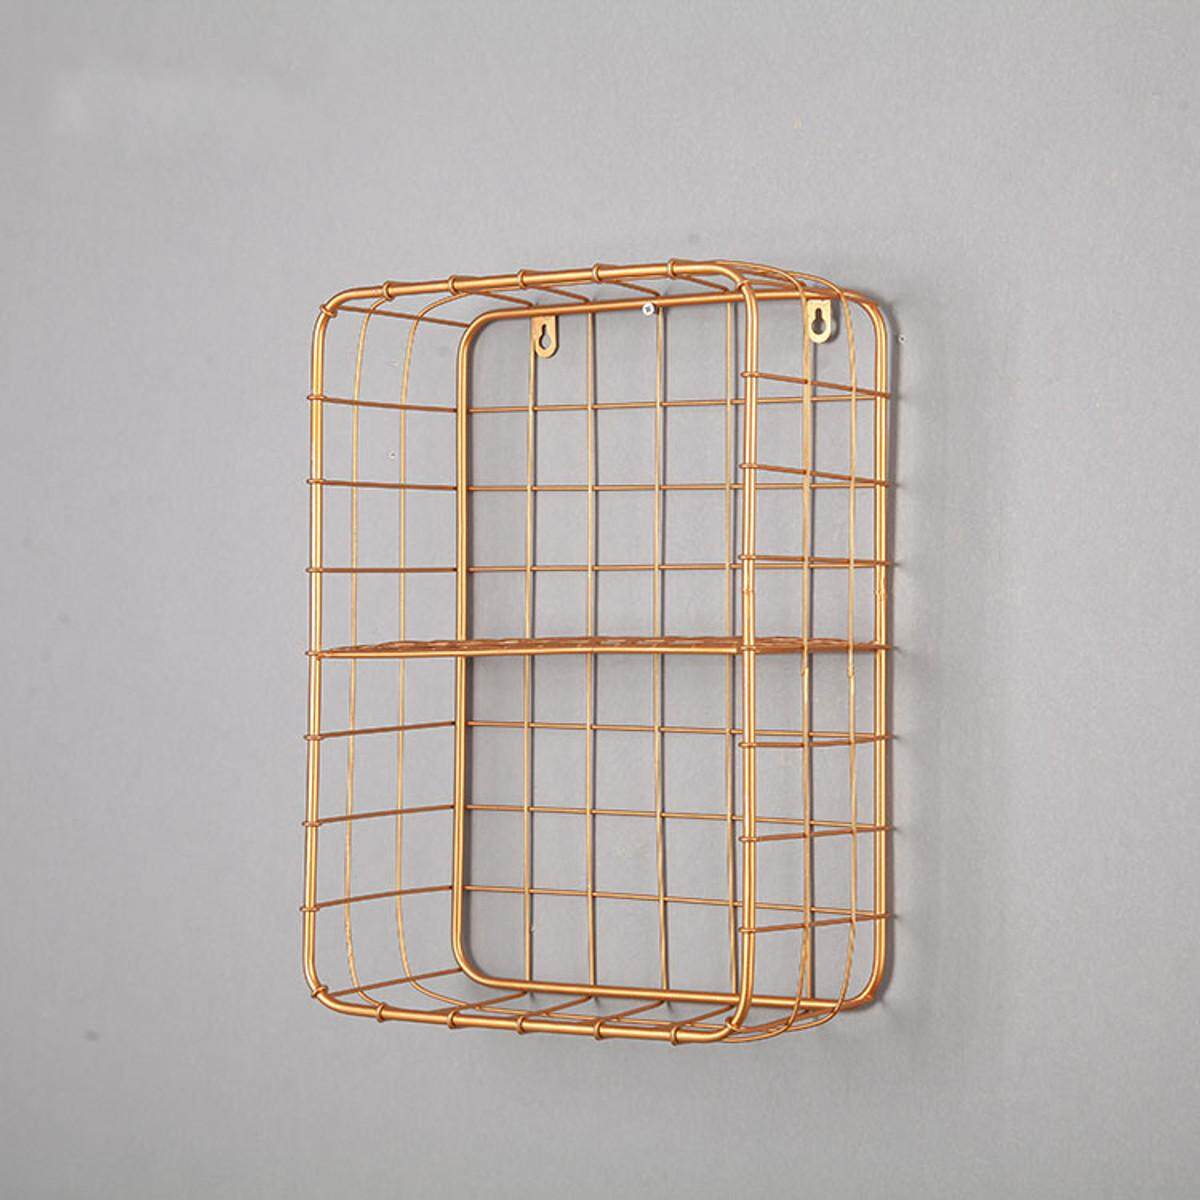 Rose Gold Metal Wire Shelf Basket Wall Mounted Hanging Photo Plant Display Rack Shelving